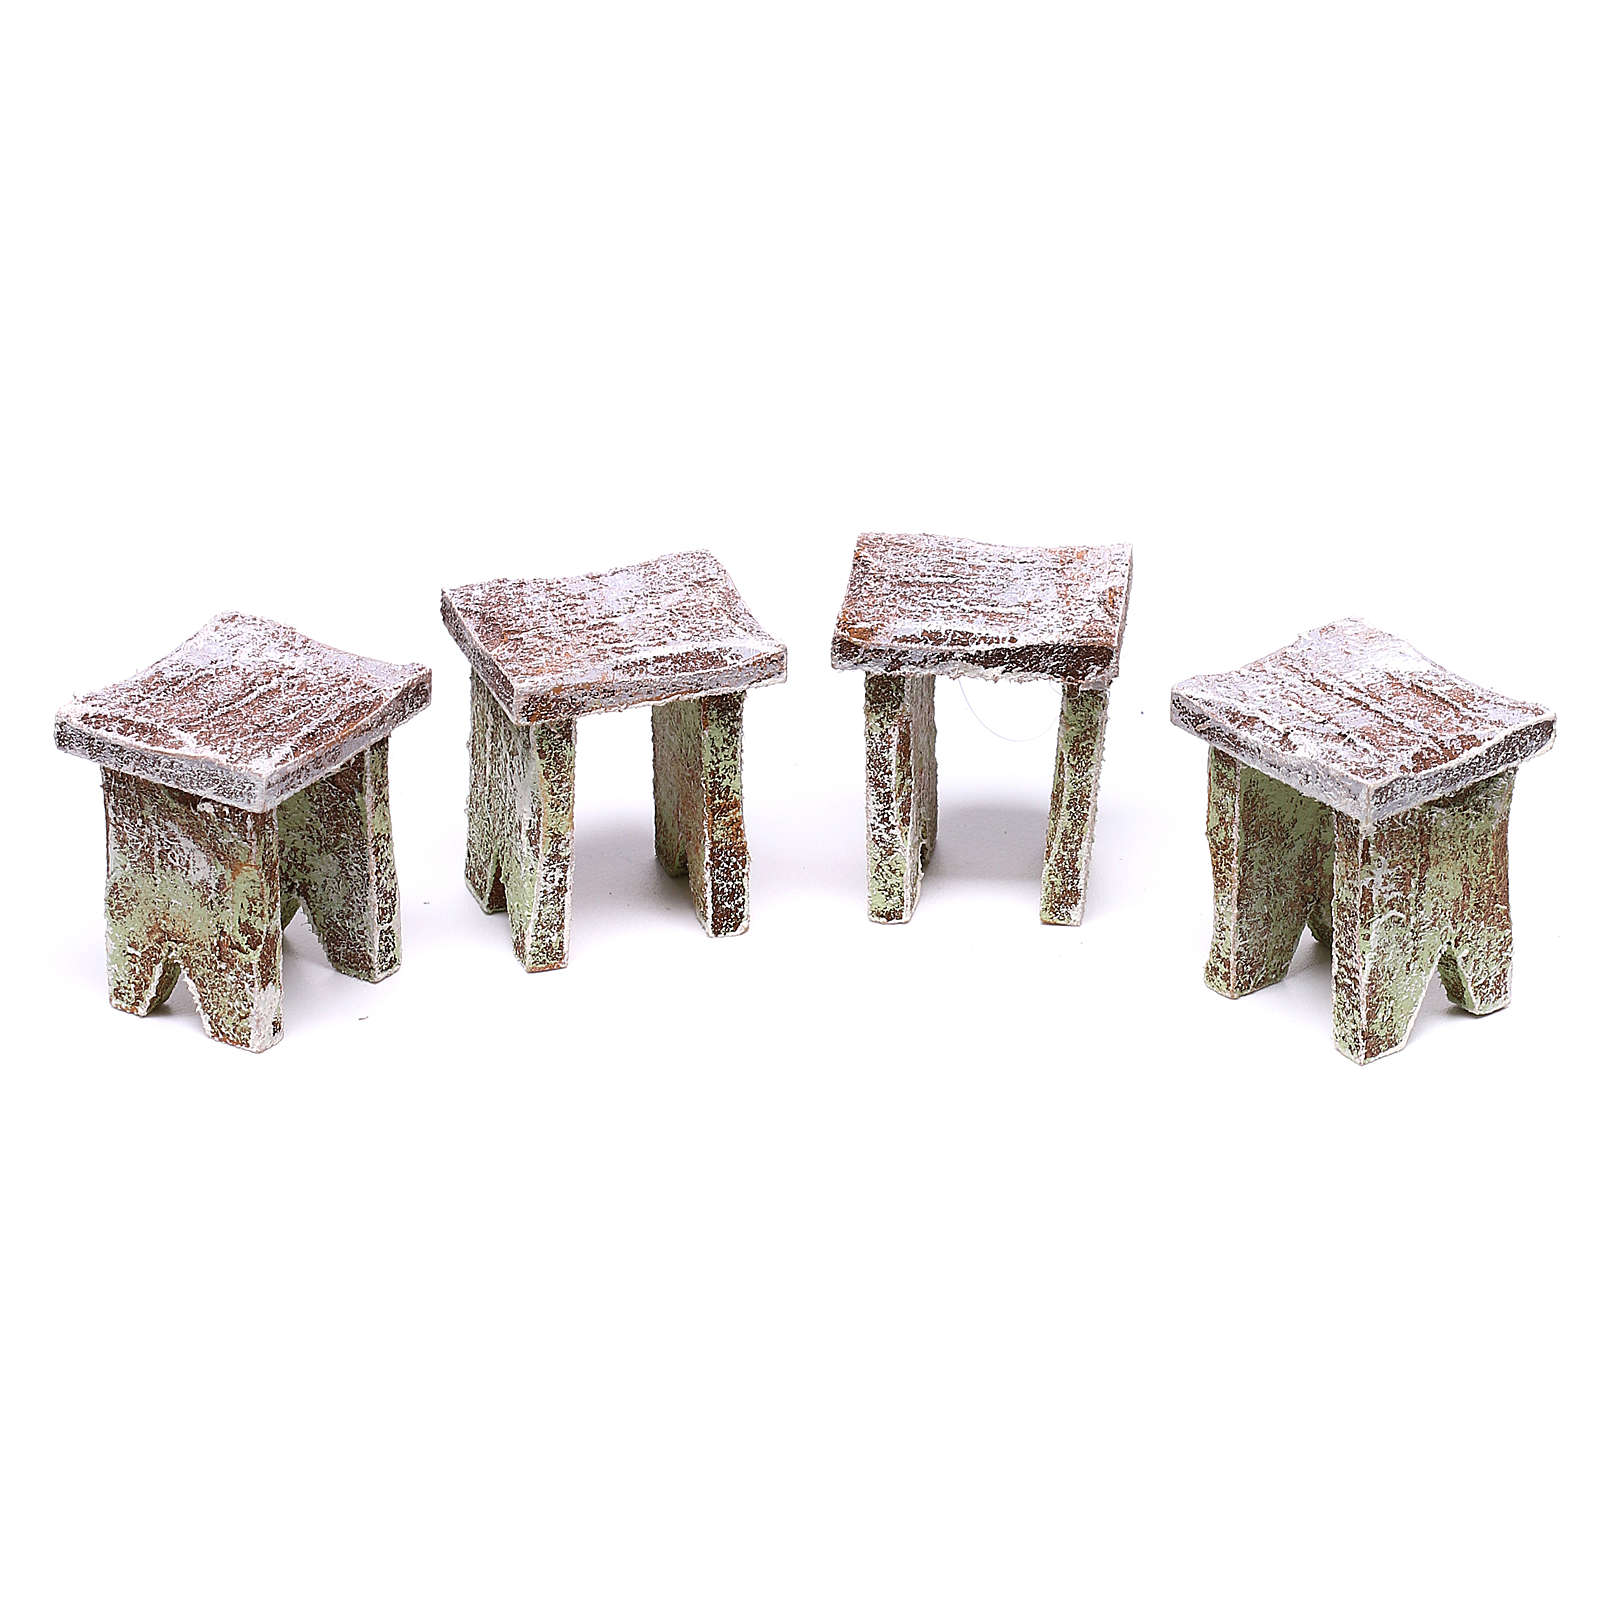 Table with cards and stools of 5x5x5 cm for Nativity scene of 12 cm 4